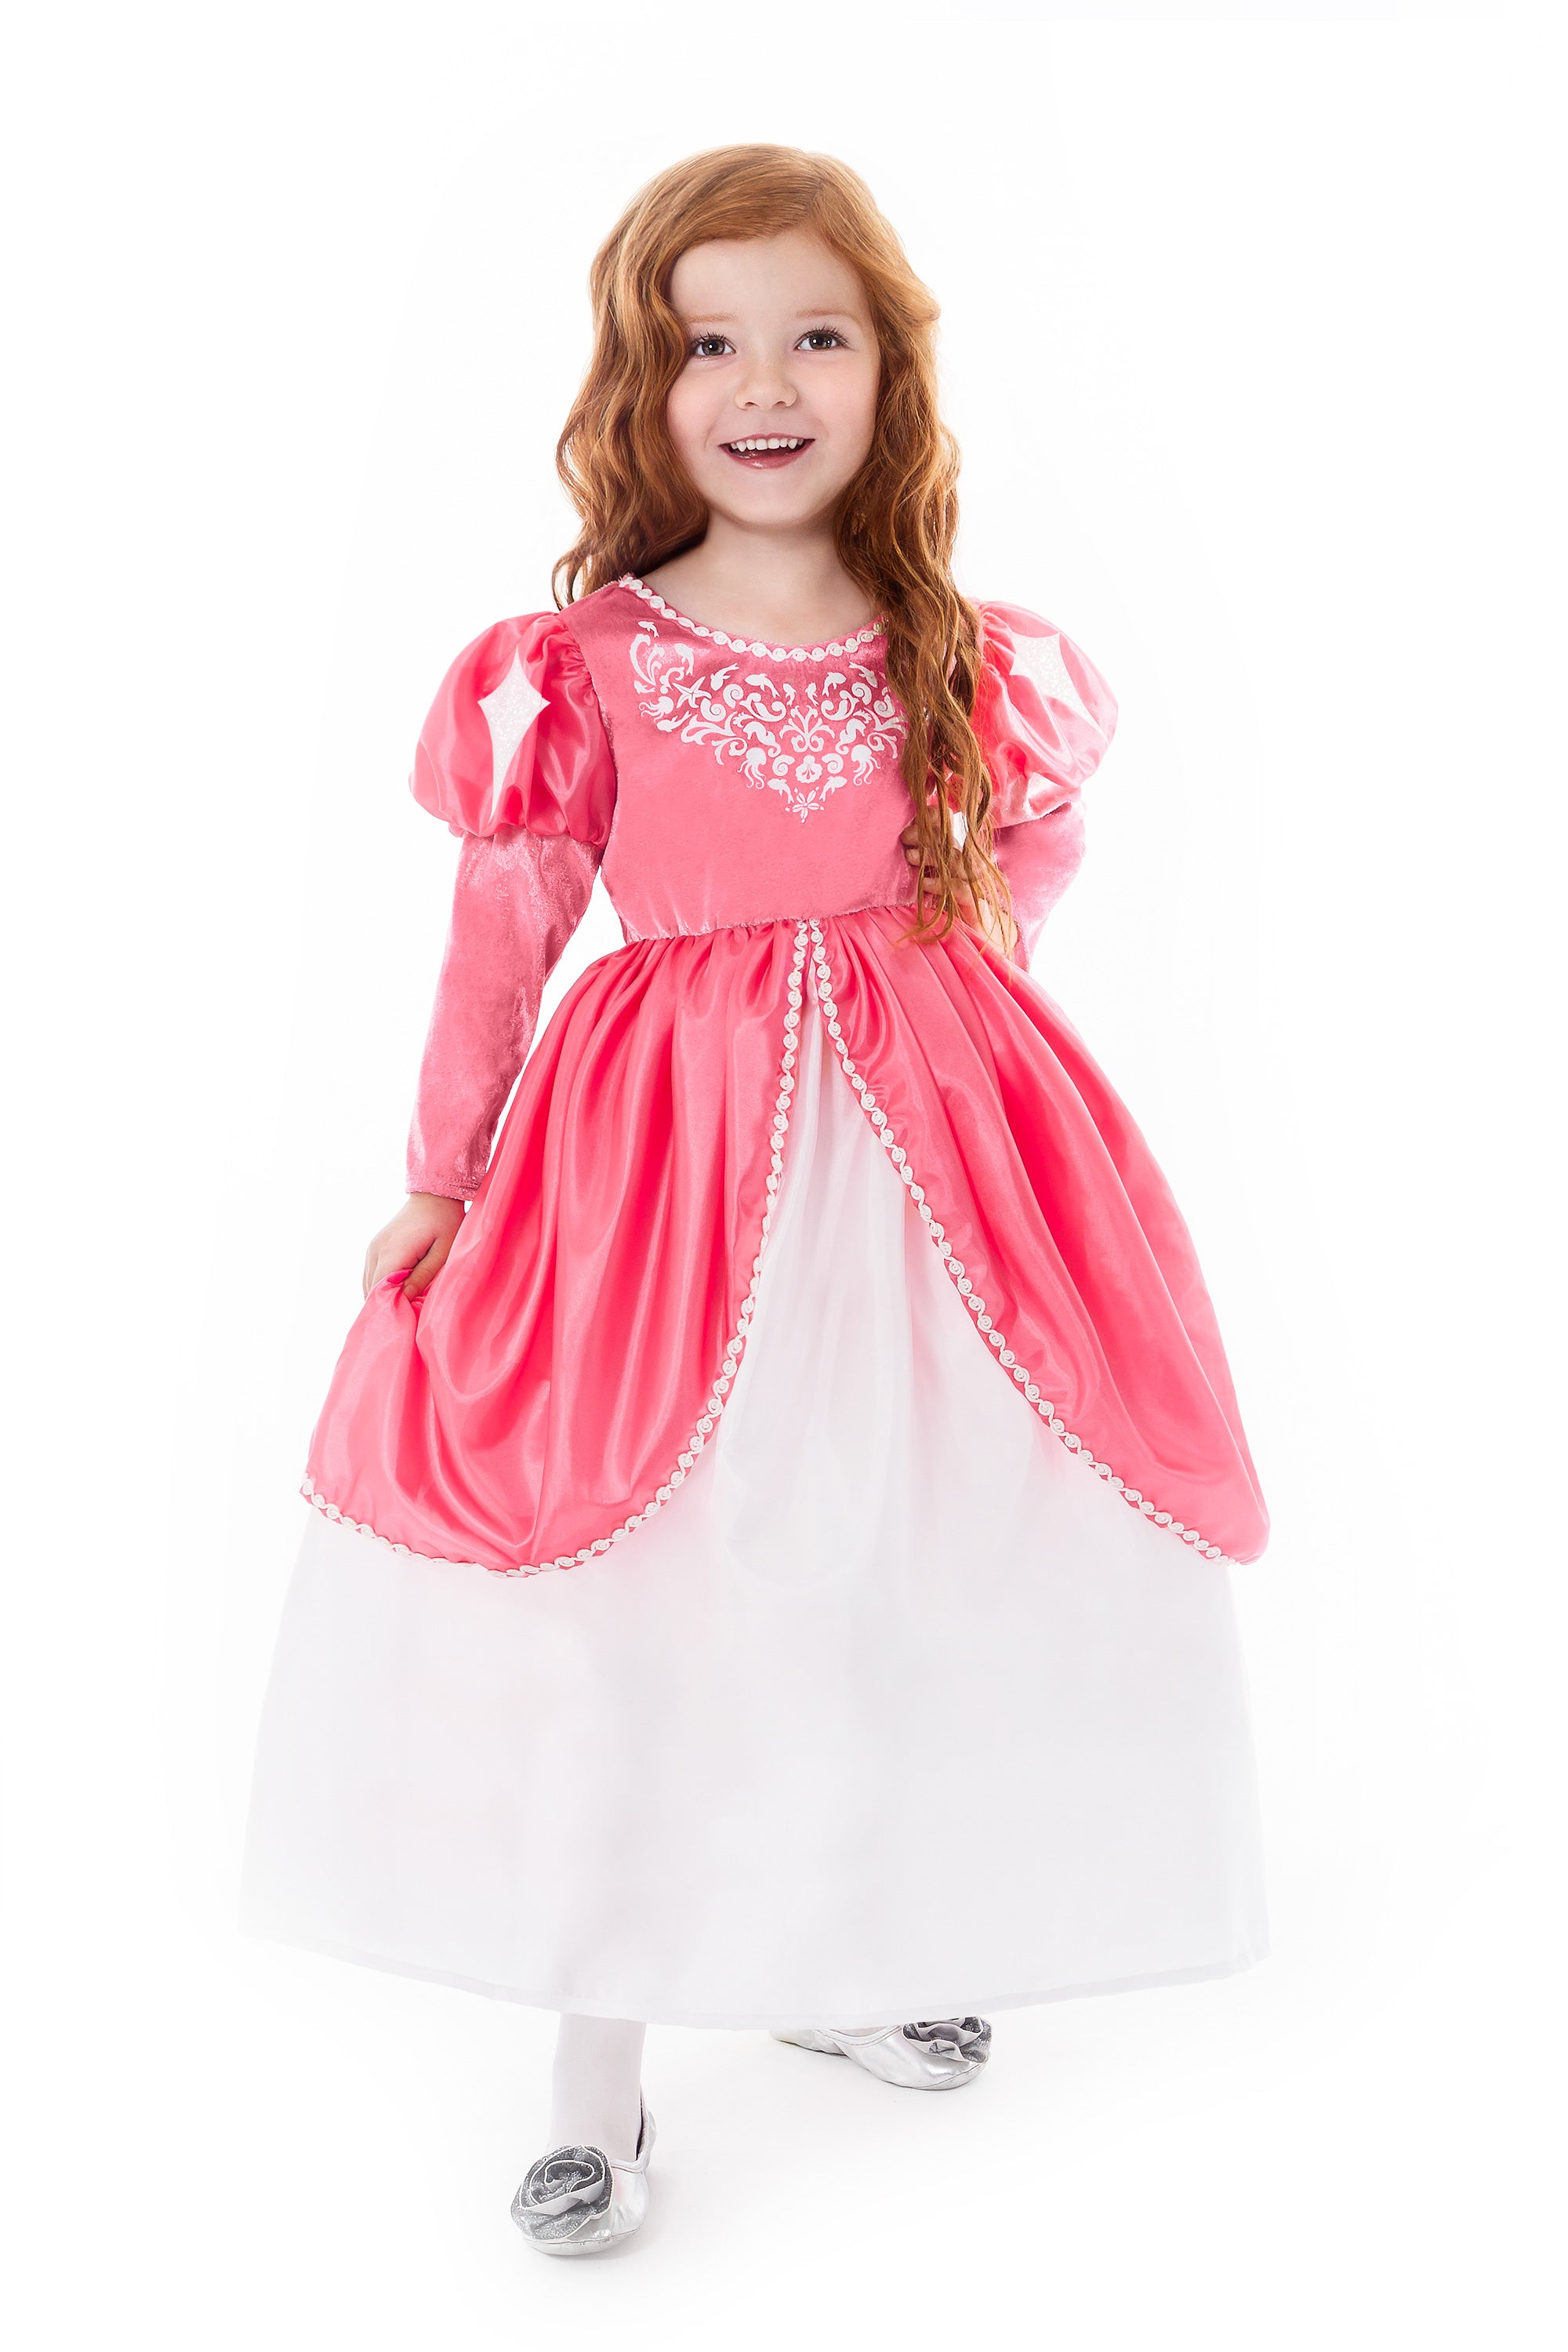 Little Adventures Mermaid Ball Gown Dress Up Costume